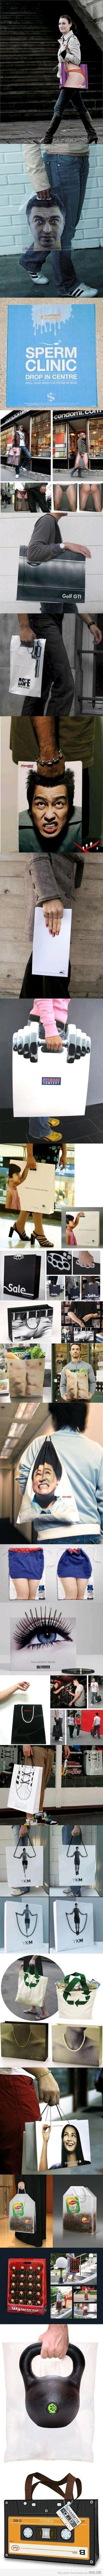 funny and great designs for bags